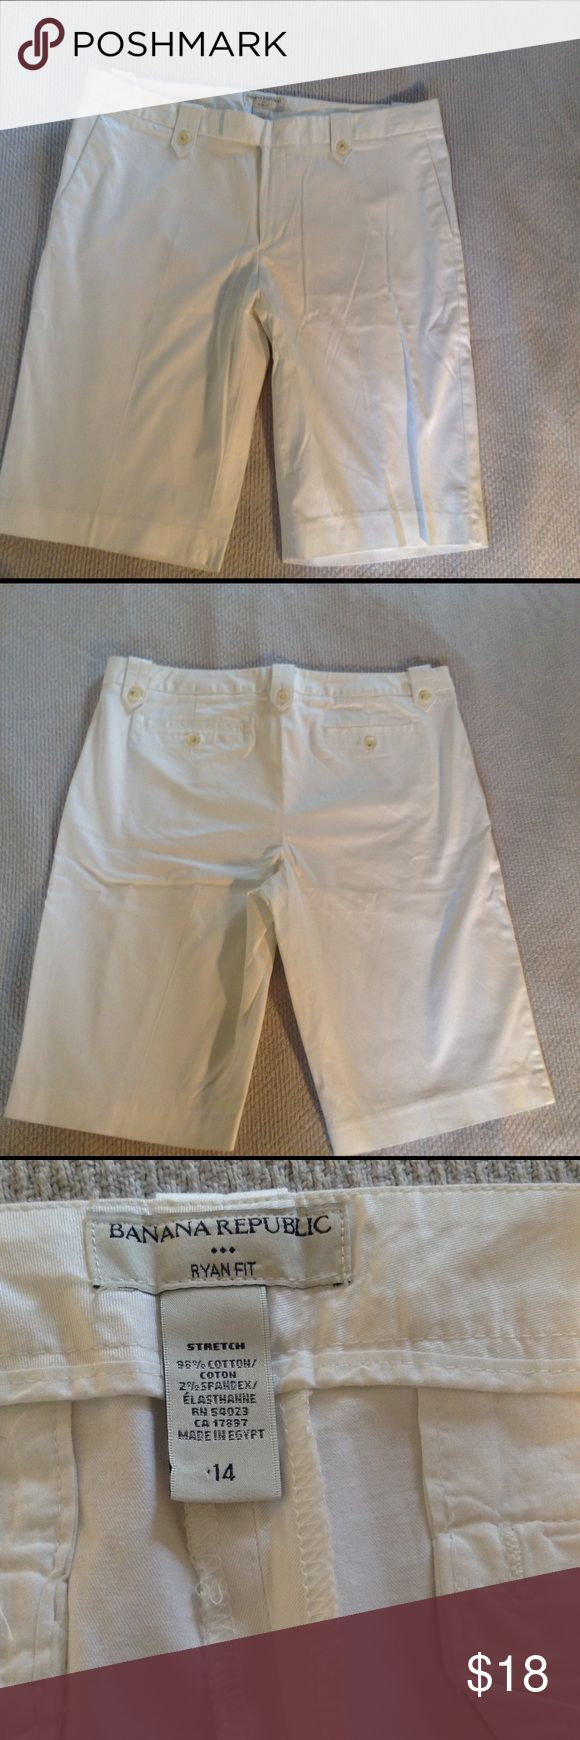 Banana Republic White Shorts Size 14 Banana Republic White Bermuda Shorts Size 14. These shorts are perfect for summer.  The belt loops feature a button and are super cute.  Like new only worn once or twice. Banana Republic Shorts Bermudas